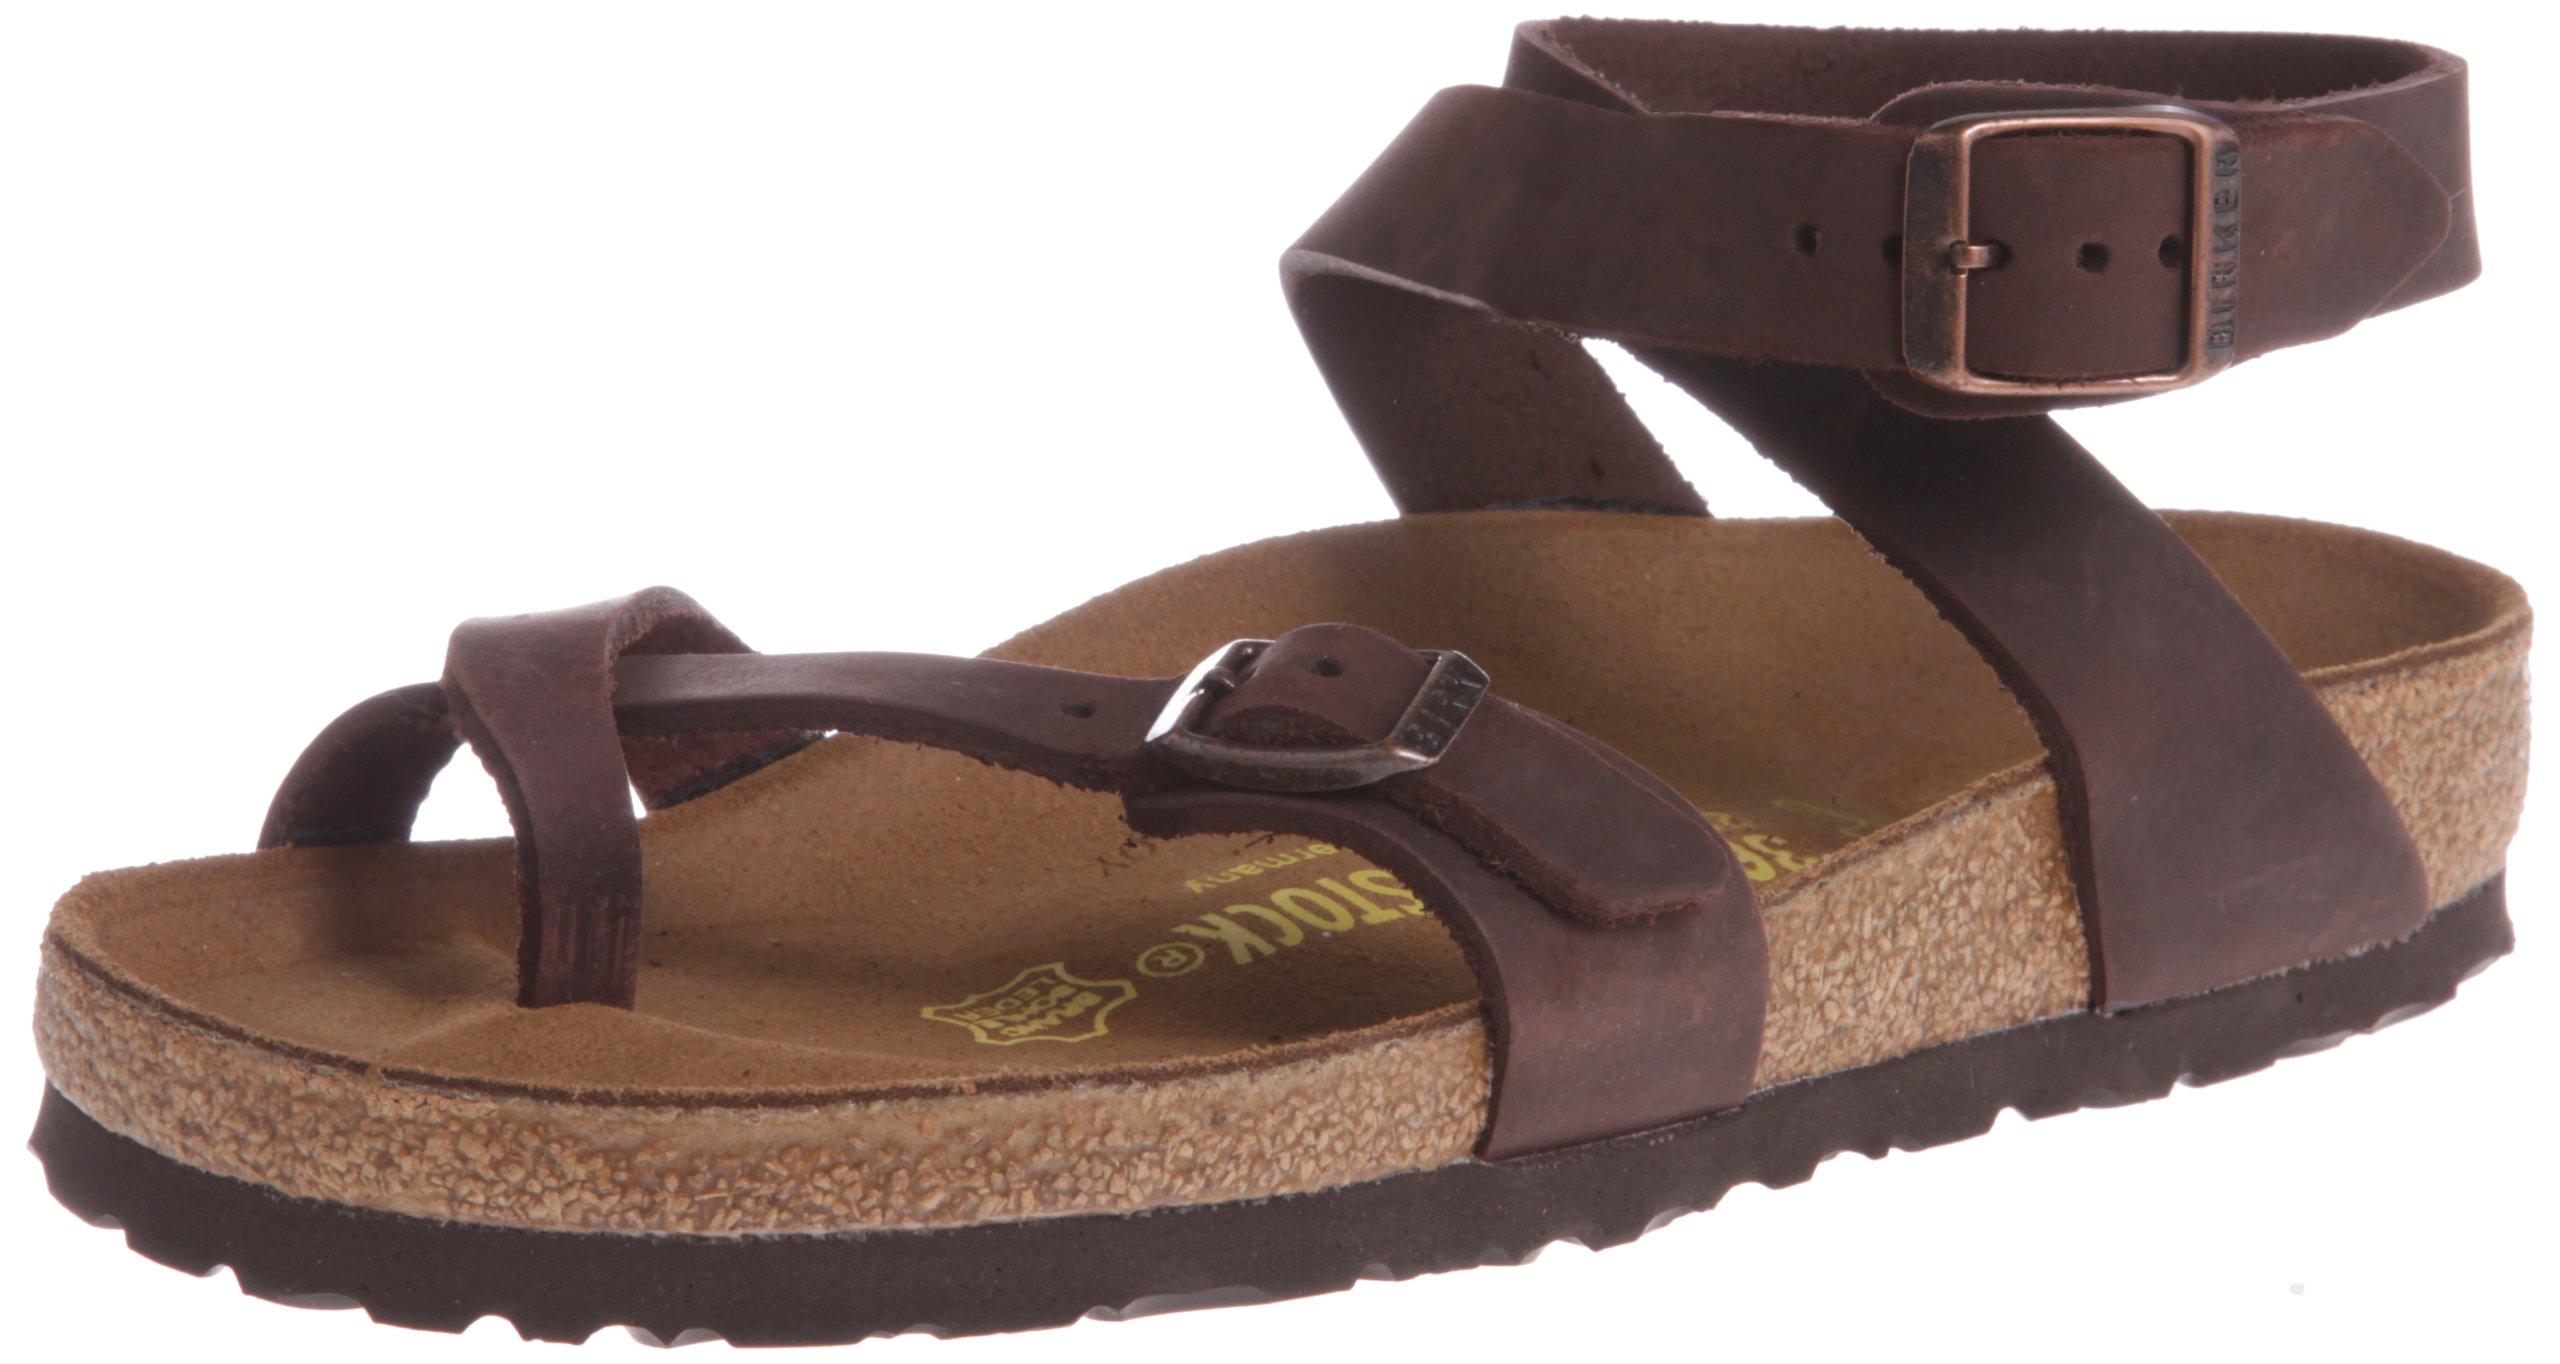 Birkenstock Women's Yara Leather Ankle-Strap Sandal,Habana,39 EU/8 M US